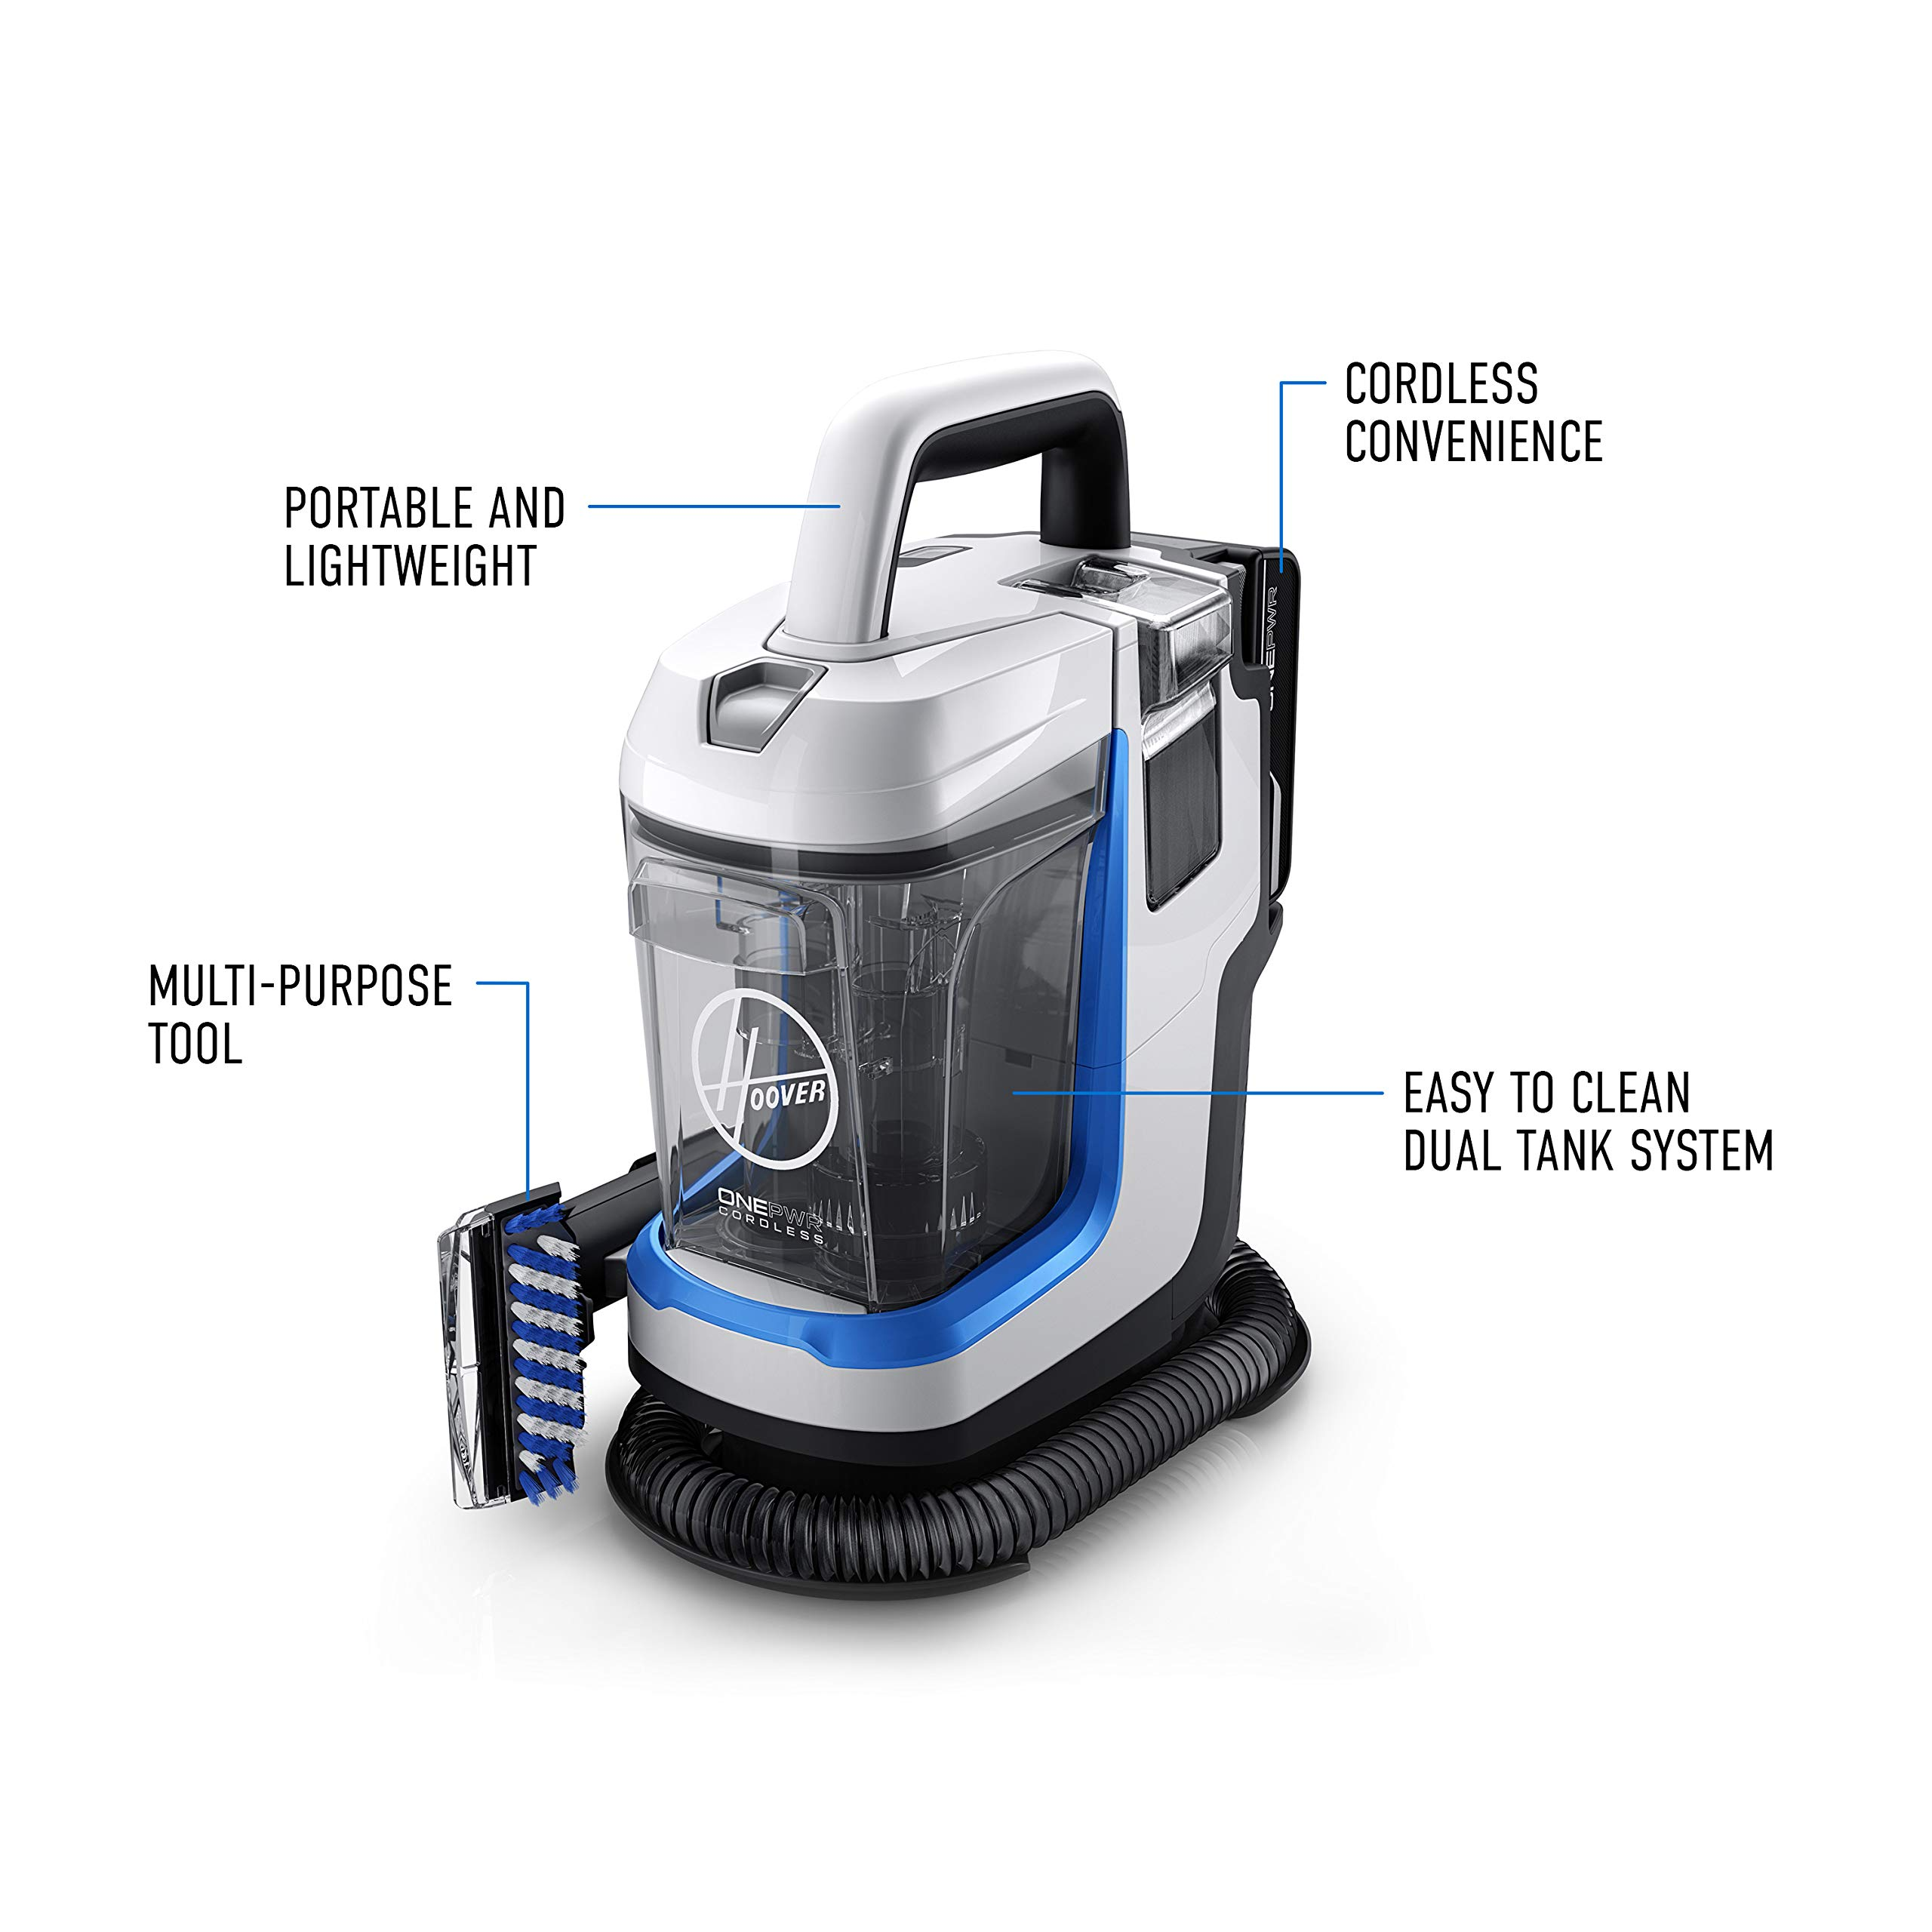 Hoover ONEPWR Spotless GO Cordless Carpet and Upholstery Cleaner, Portable, Lightweight, BH12001, White by Hoover (Image #7)